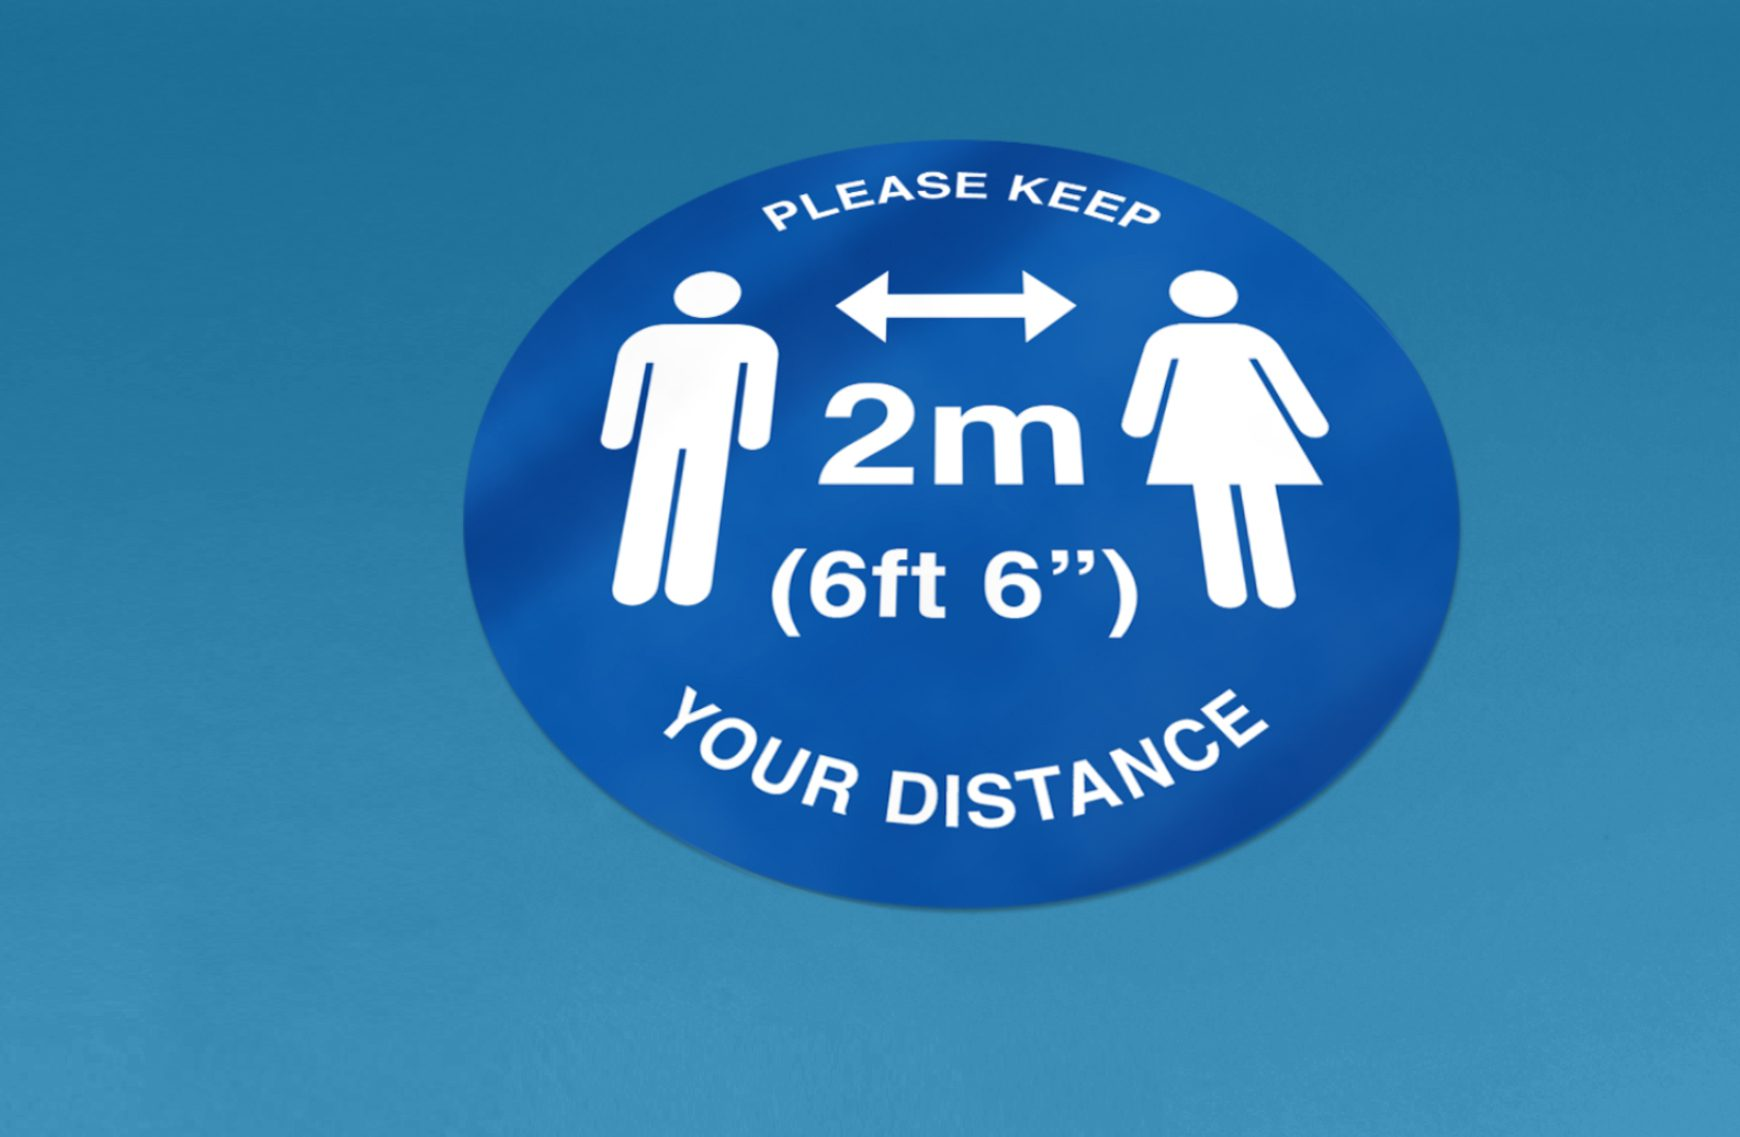 Social distancing floor sticker.